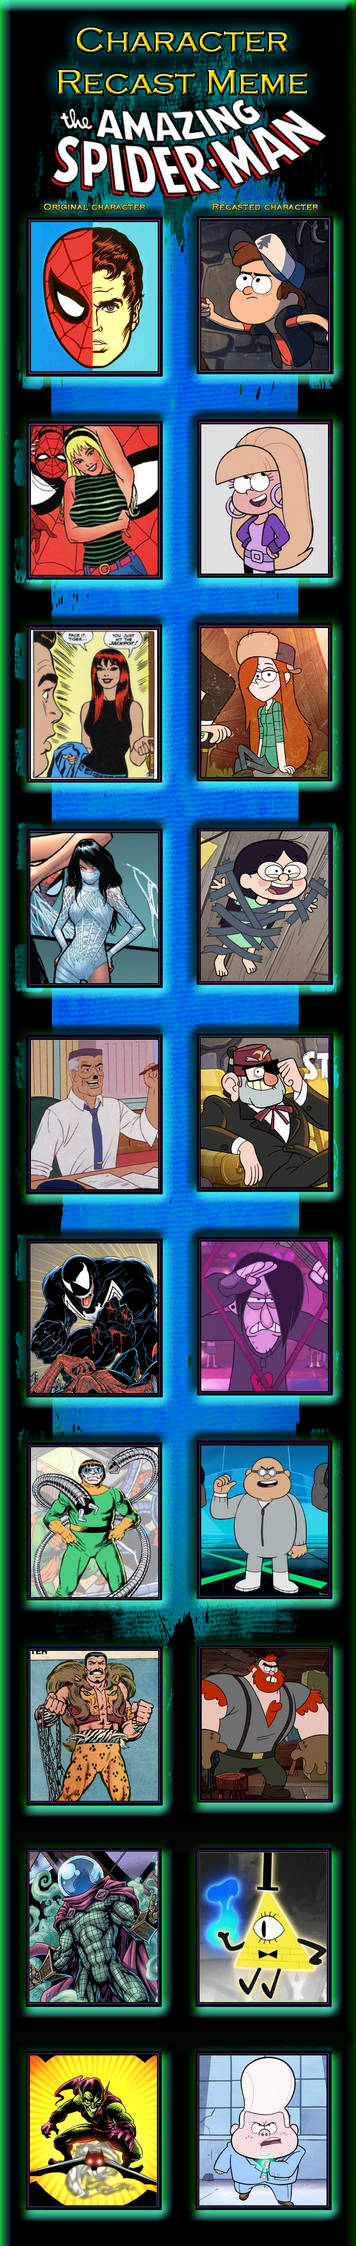 Character Recast Meme - Spider-Man/Gravity Falls by killb94